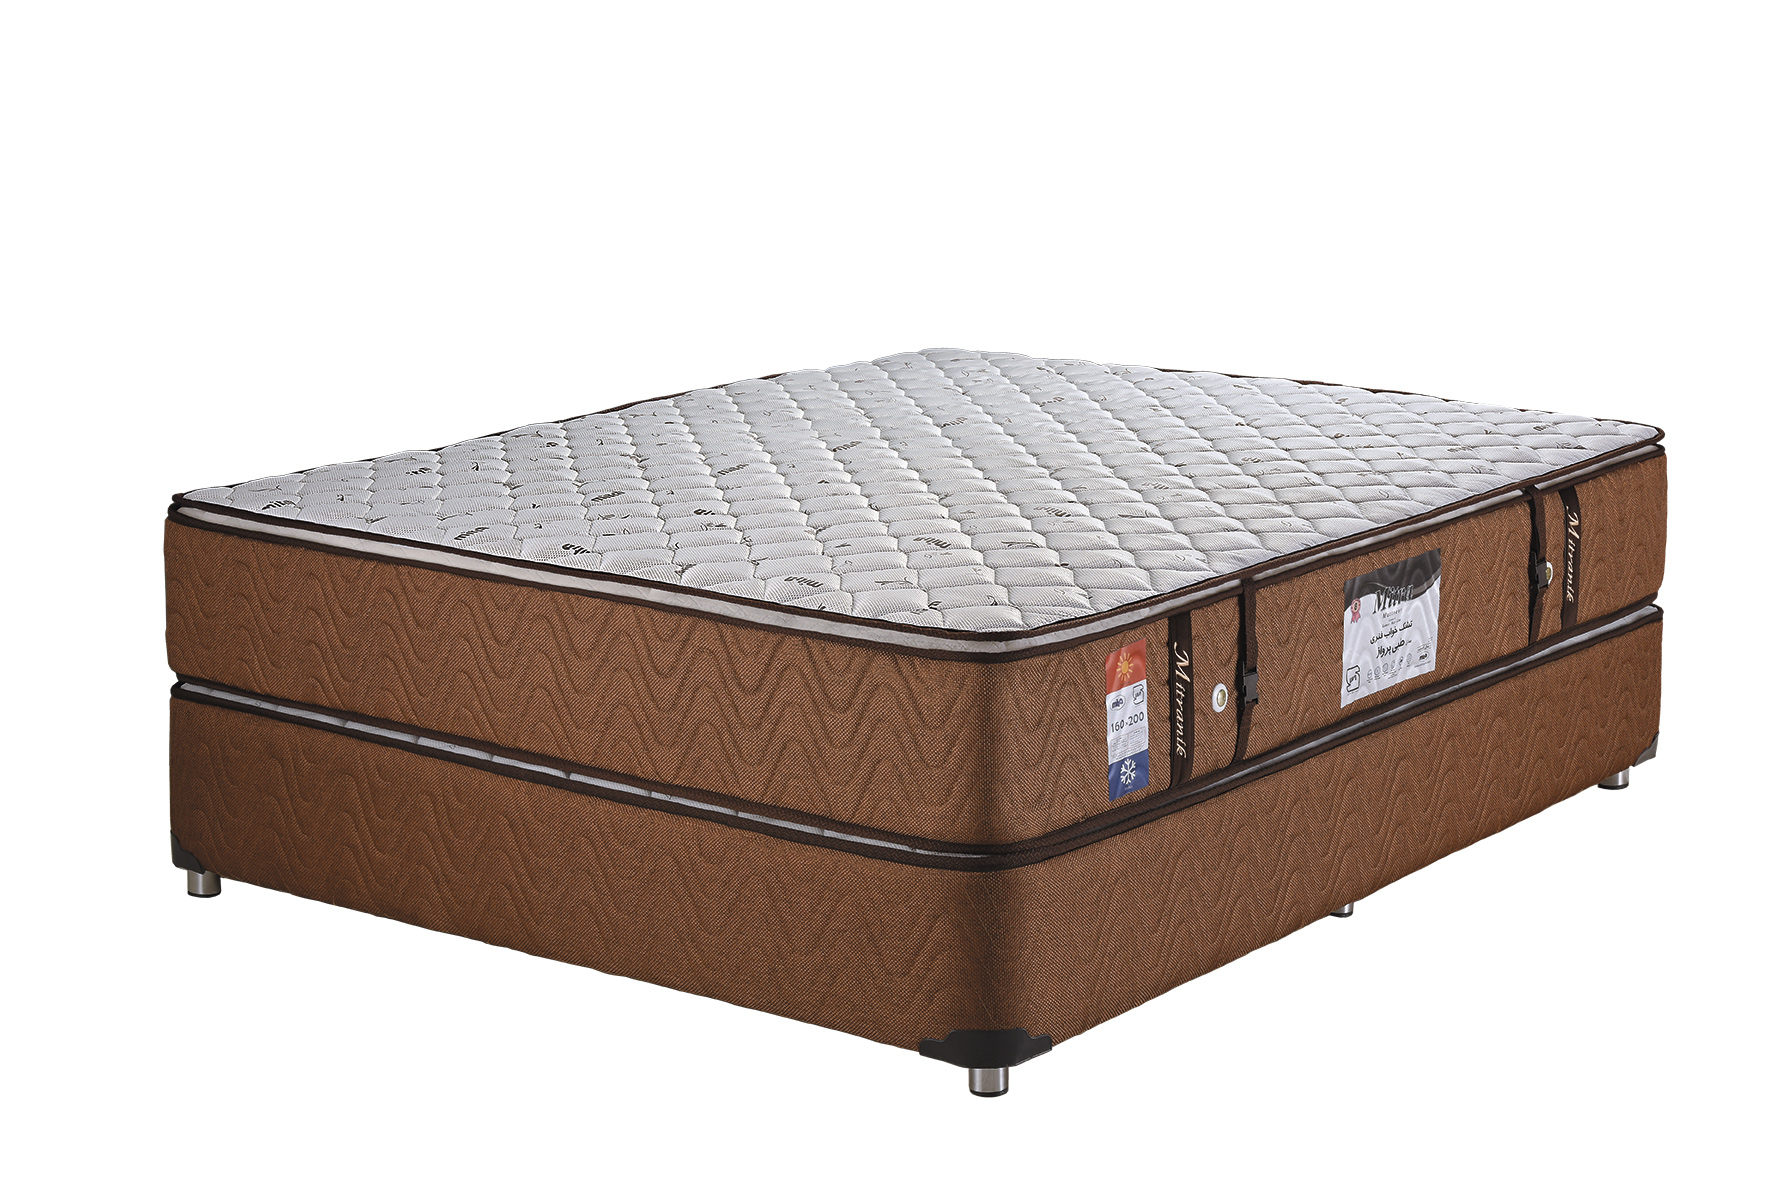 medical mattress and spring  parvaz